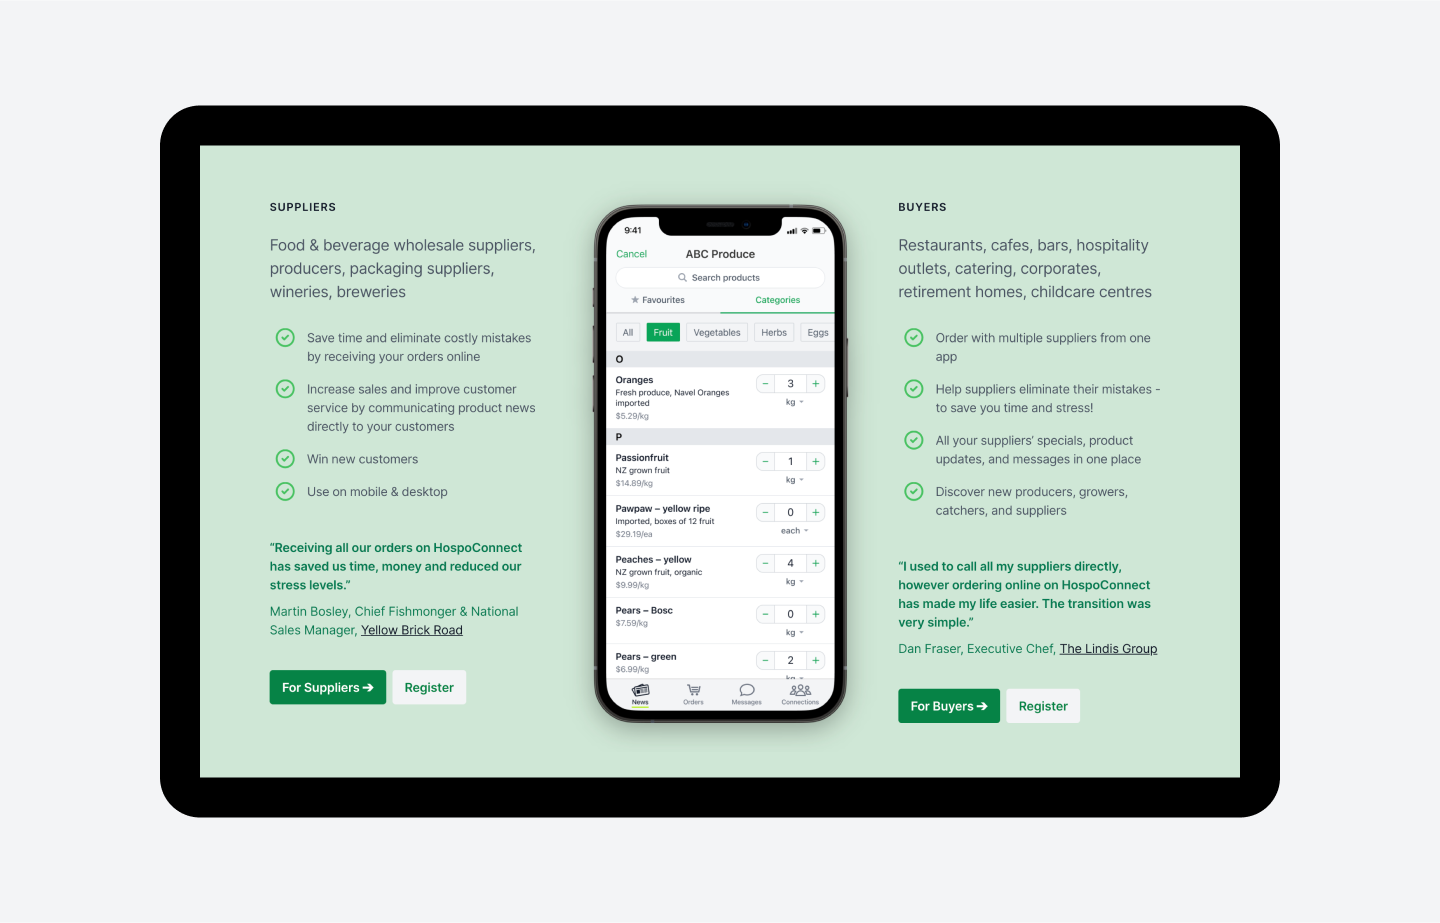 HospoConnect app benefits for suppliers and buyers